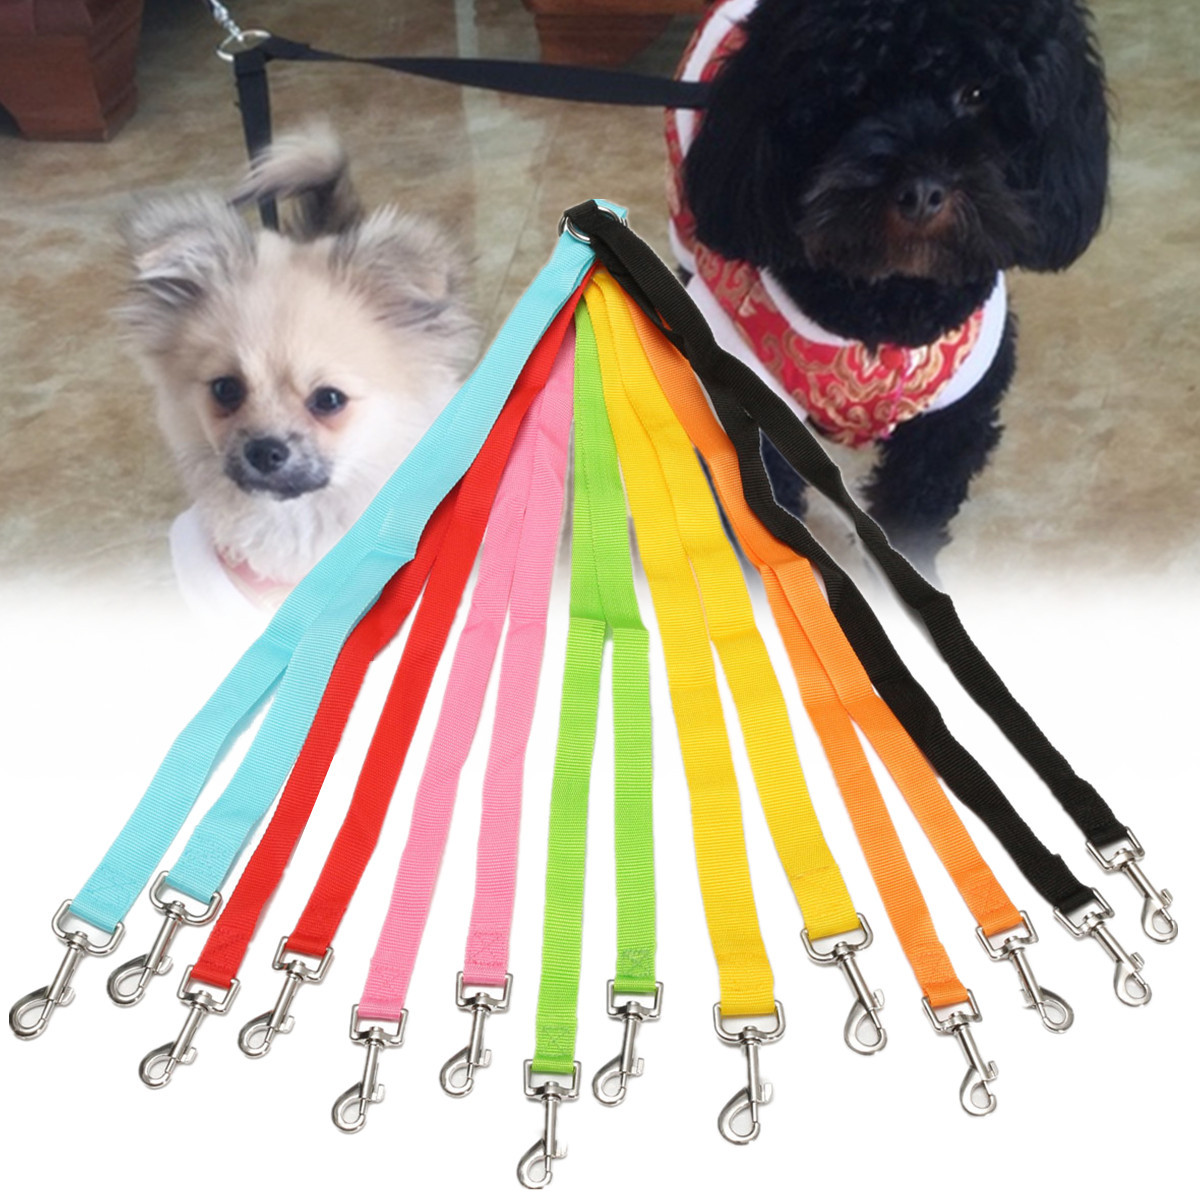 Double Dog Coupler Twin Lead - Safety Dog Leash Coupler Double Lead 2 Way No Tangle Dual Twin Walk Pet Duplex 50cm